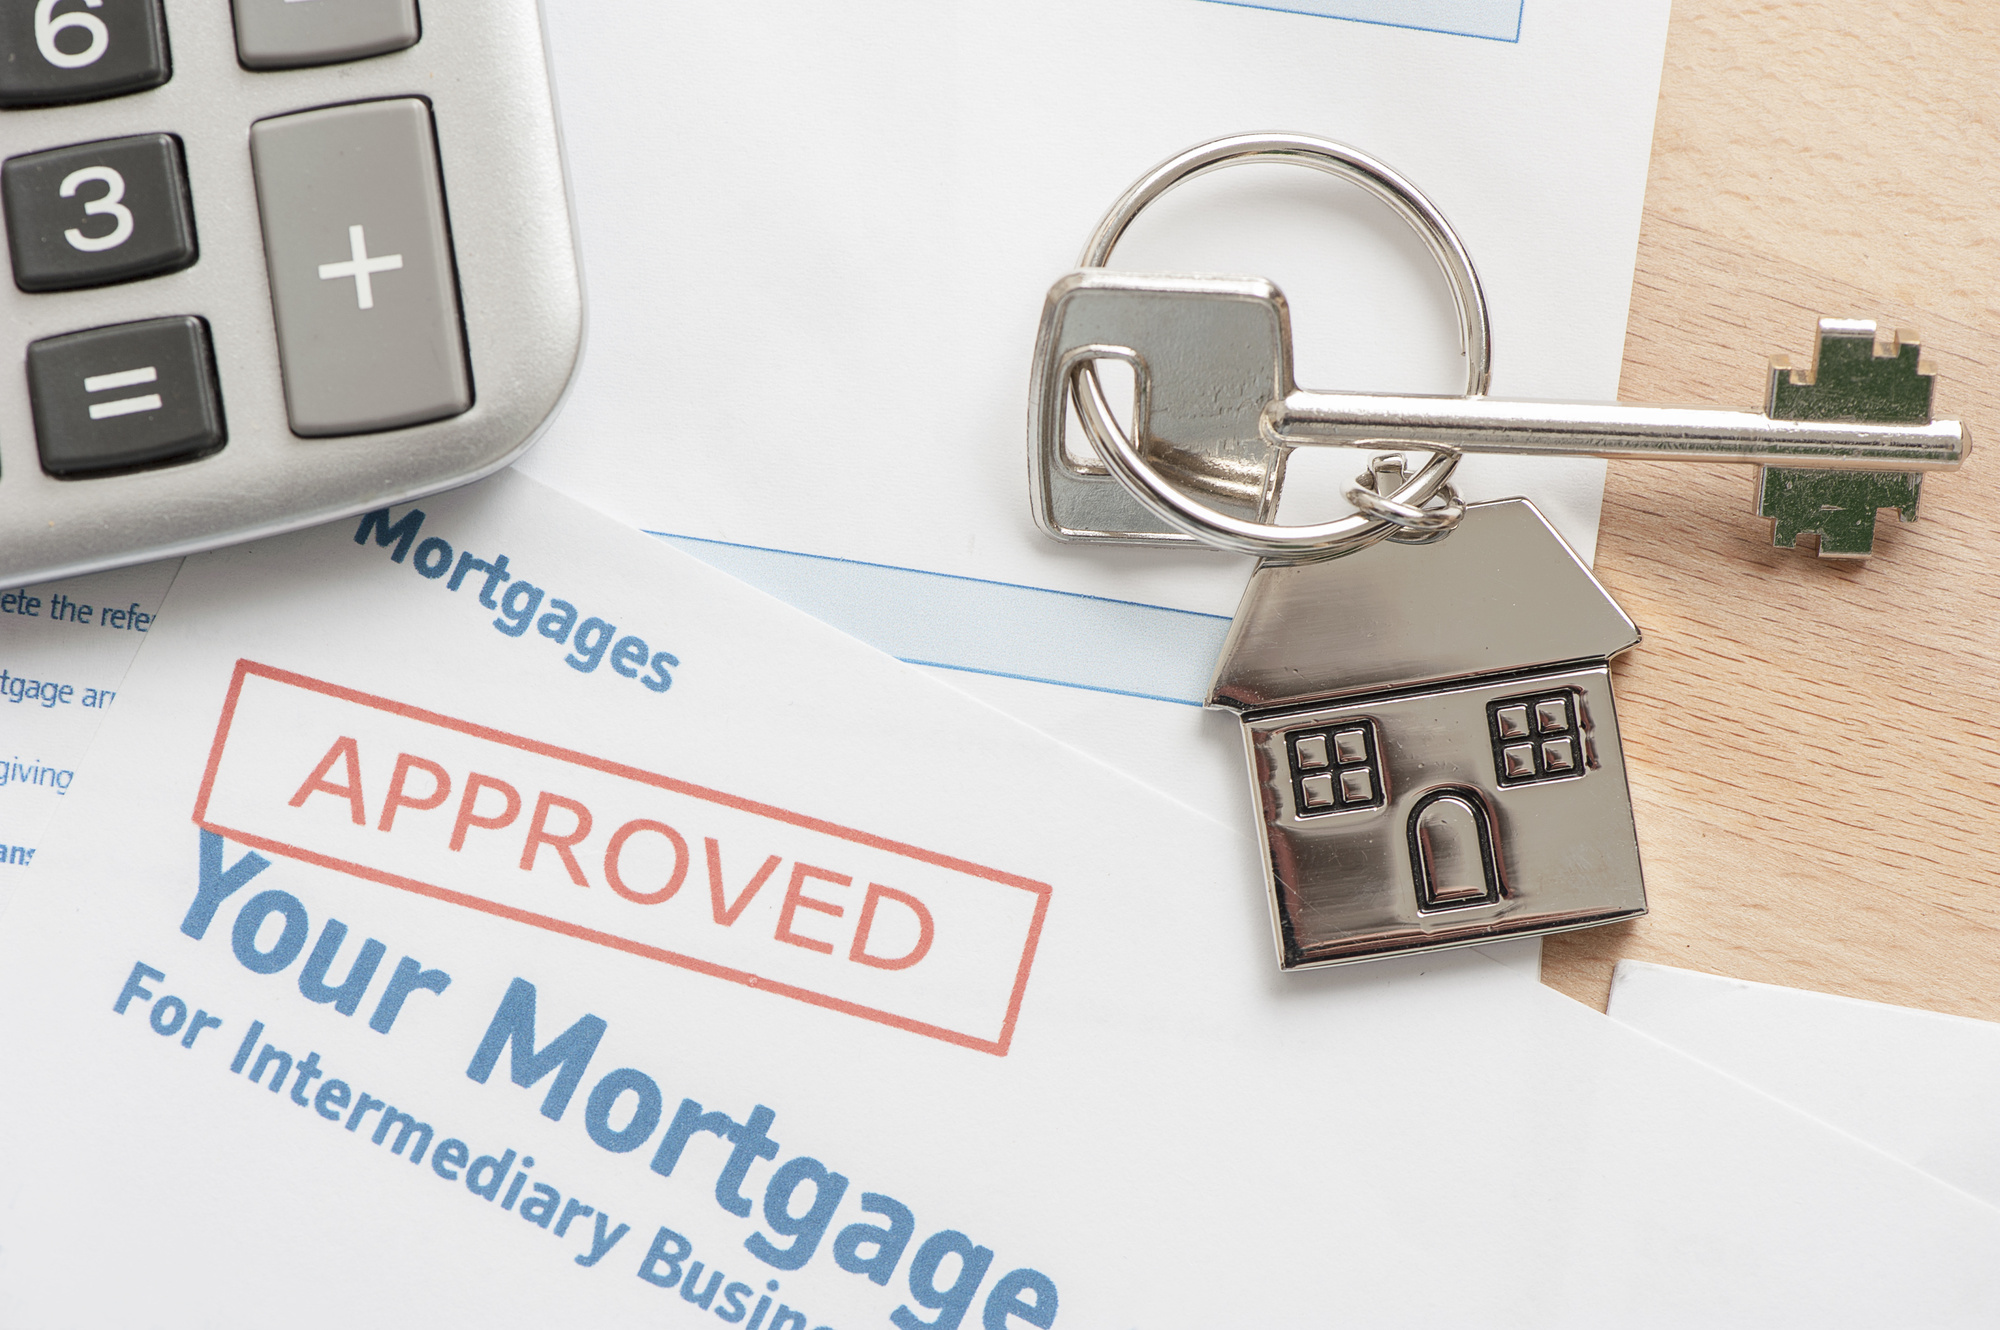 Do you want to apply for an FHA loan but don't know how? Keep reading and learn all about how to apply for FHA loan here.